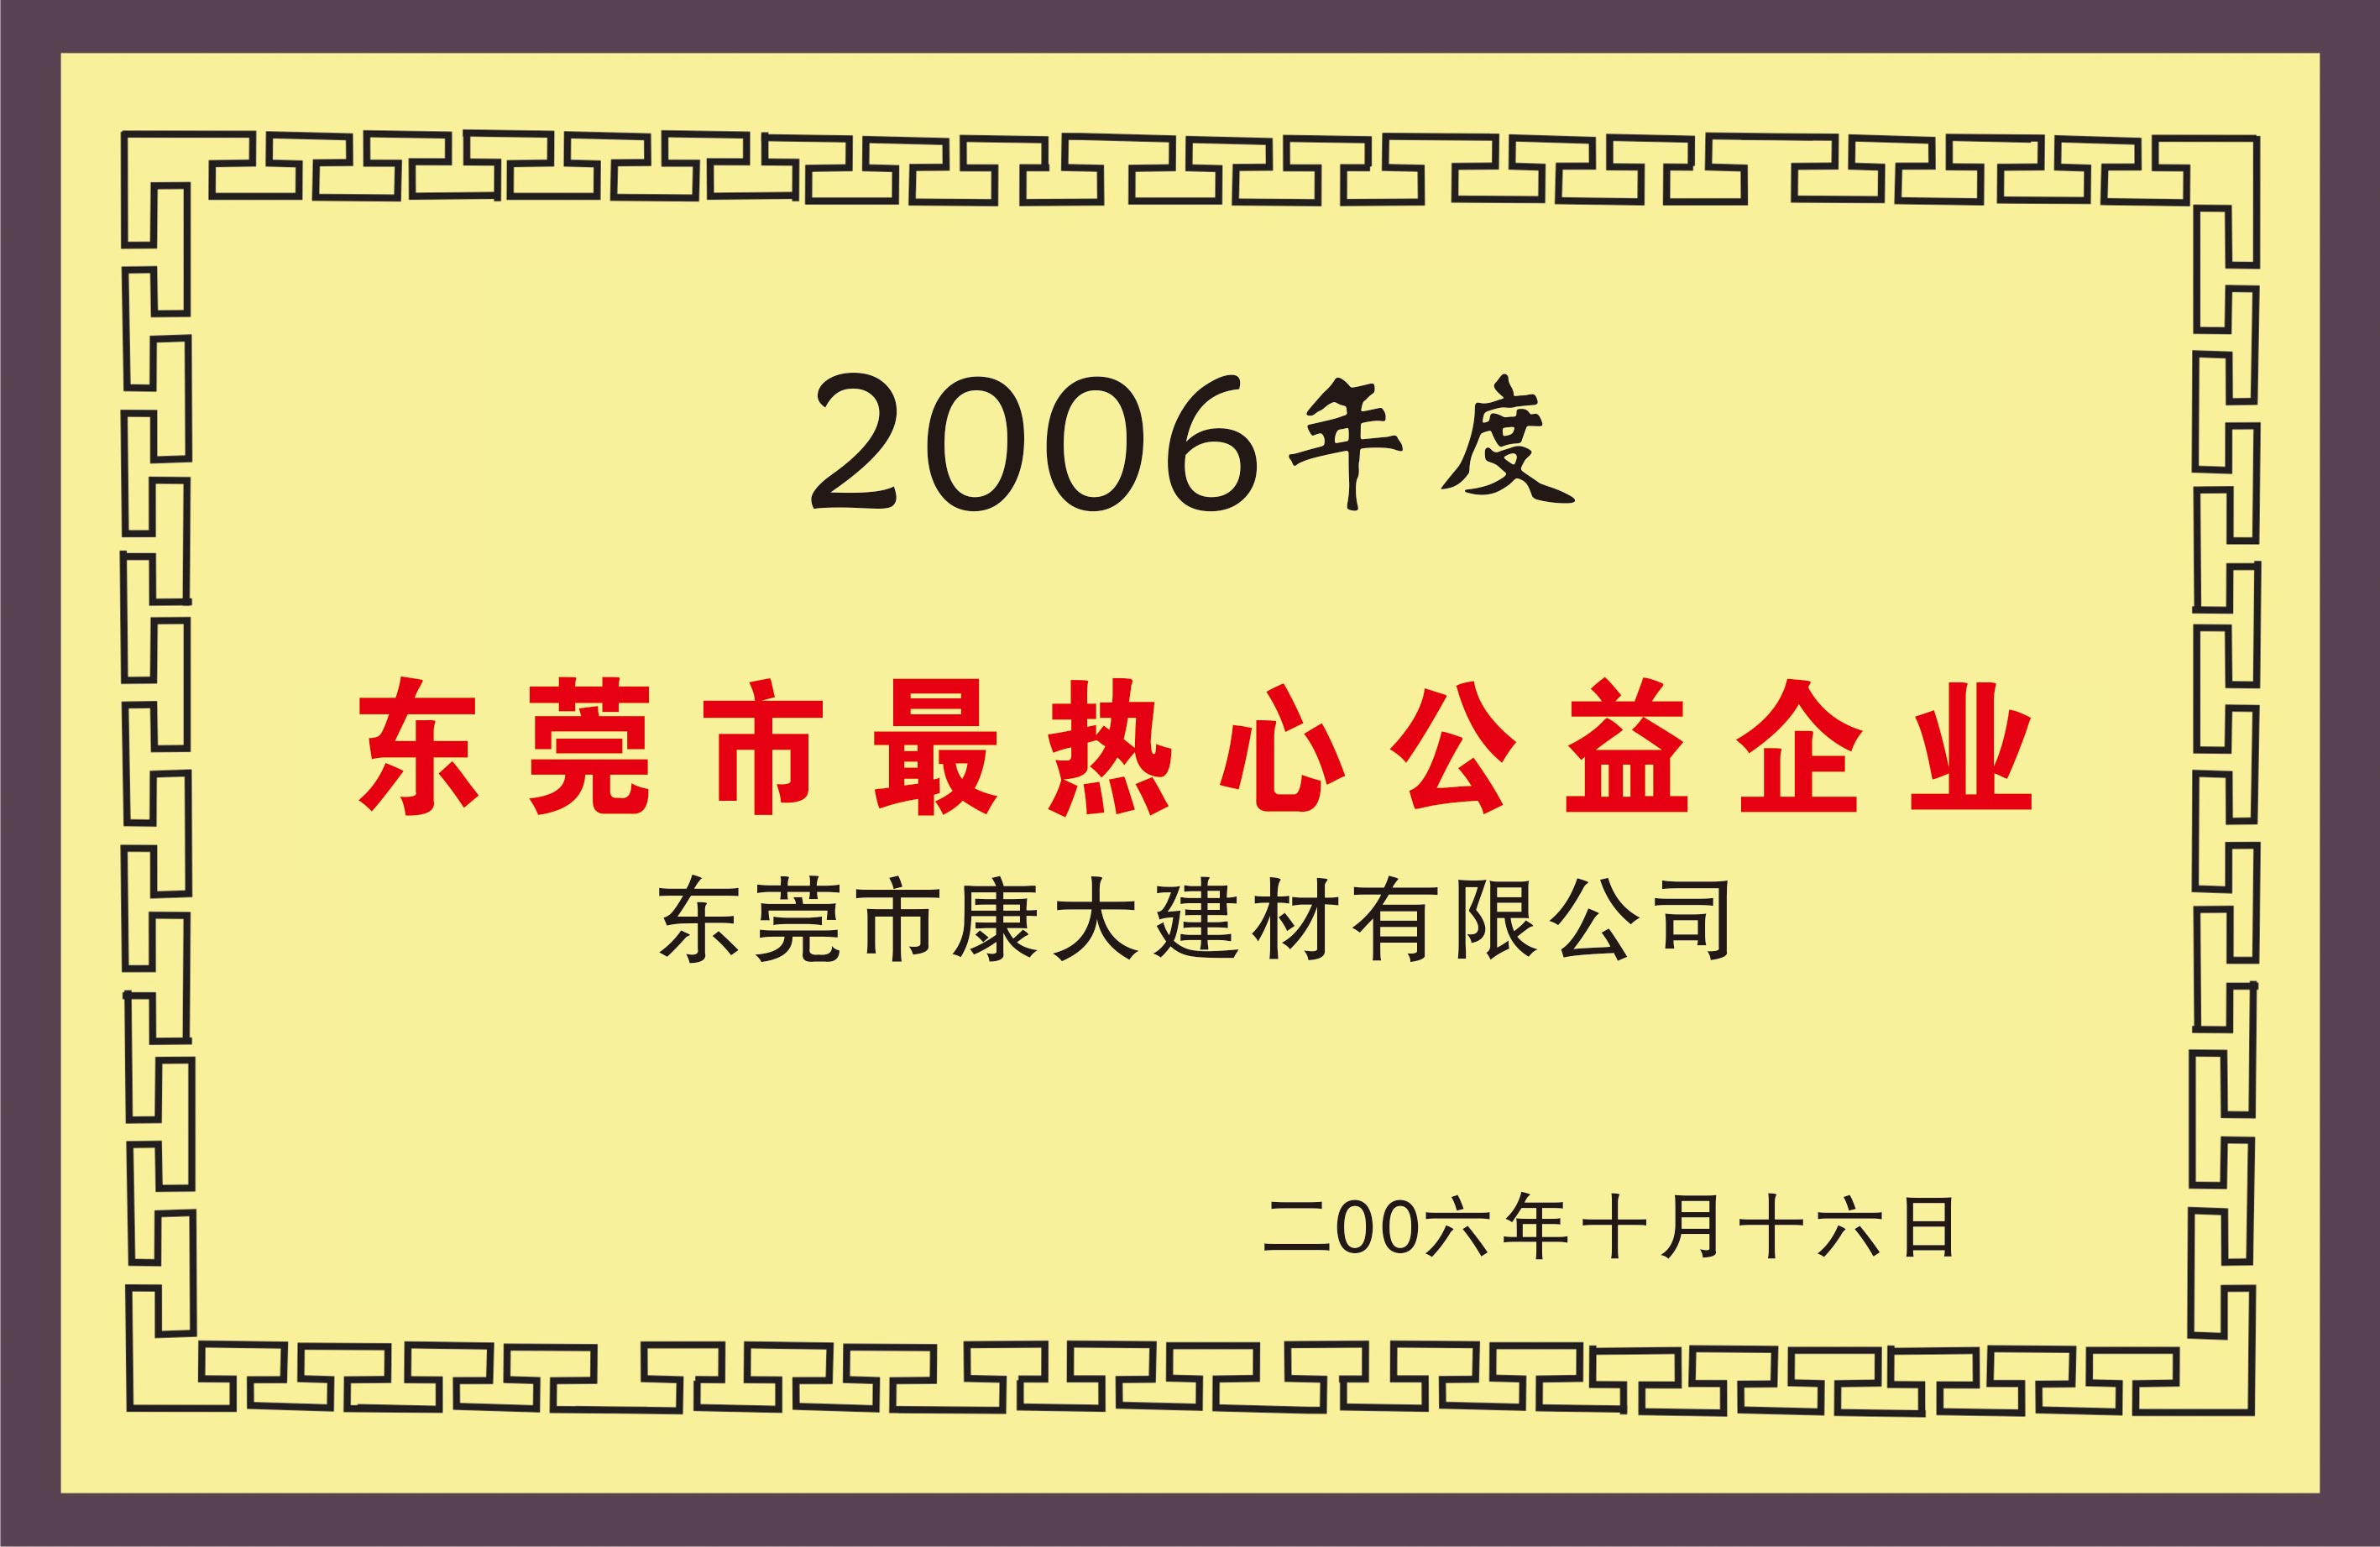 The most public-spirited company in Dongguan